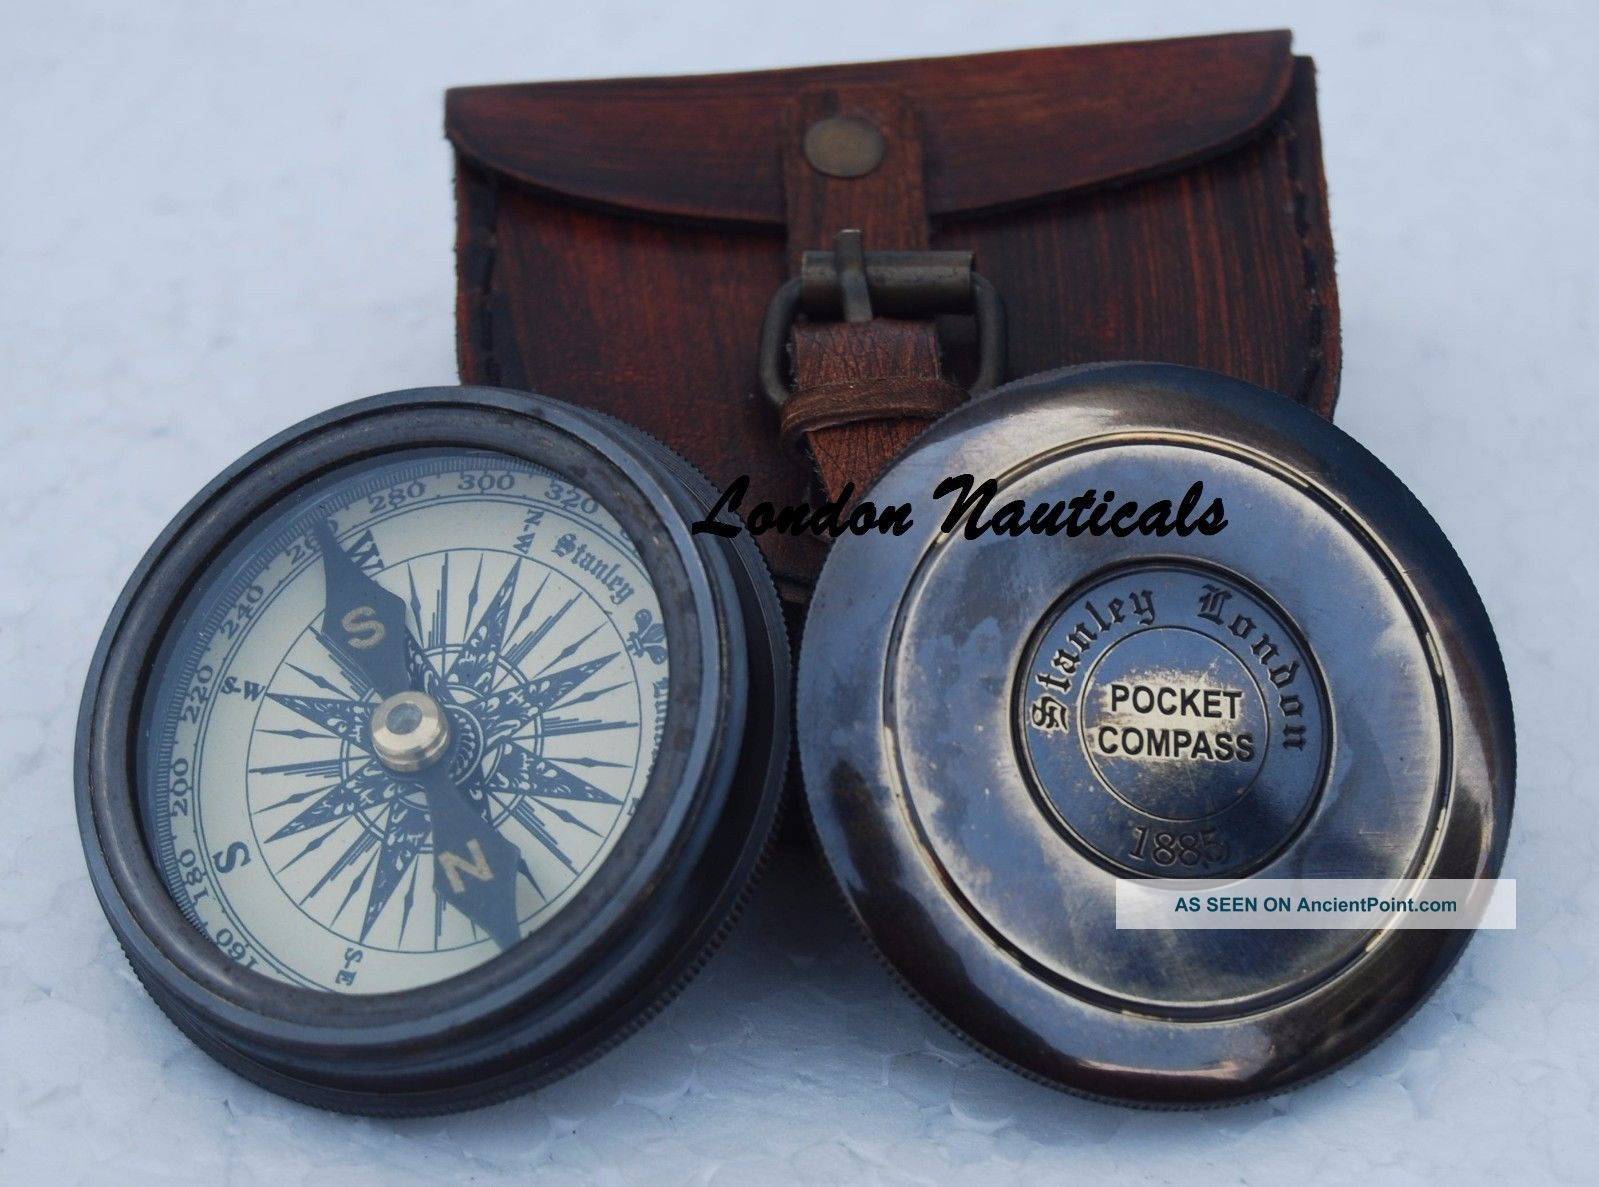 Robert Frost 1885 Poem Engraved London Compass Old Marine With Case Compasses photo